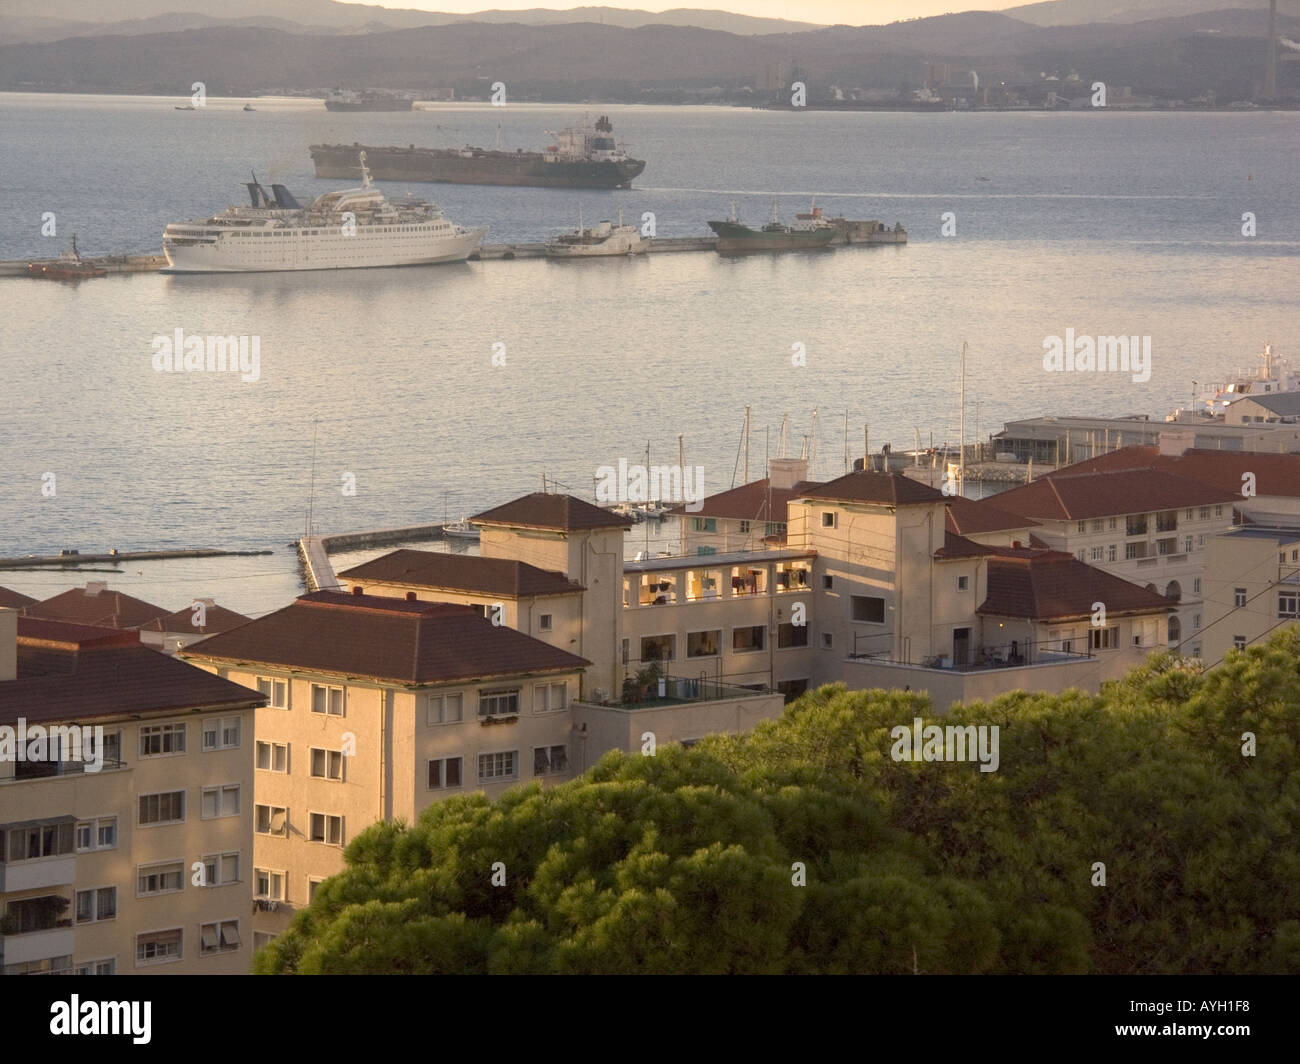 Dusk over the Bay of Gibraltar, Europe, ship and tankers, - Stock Image